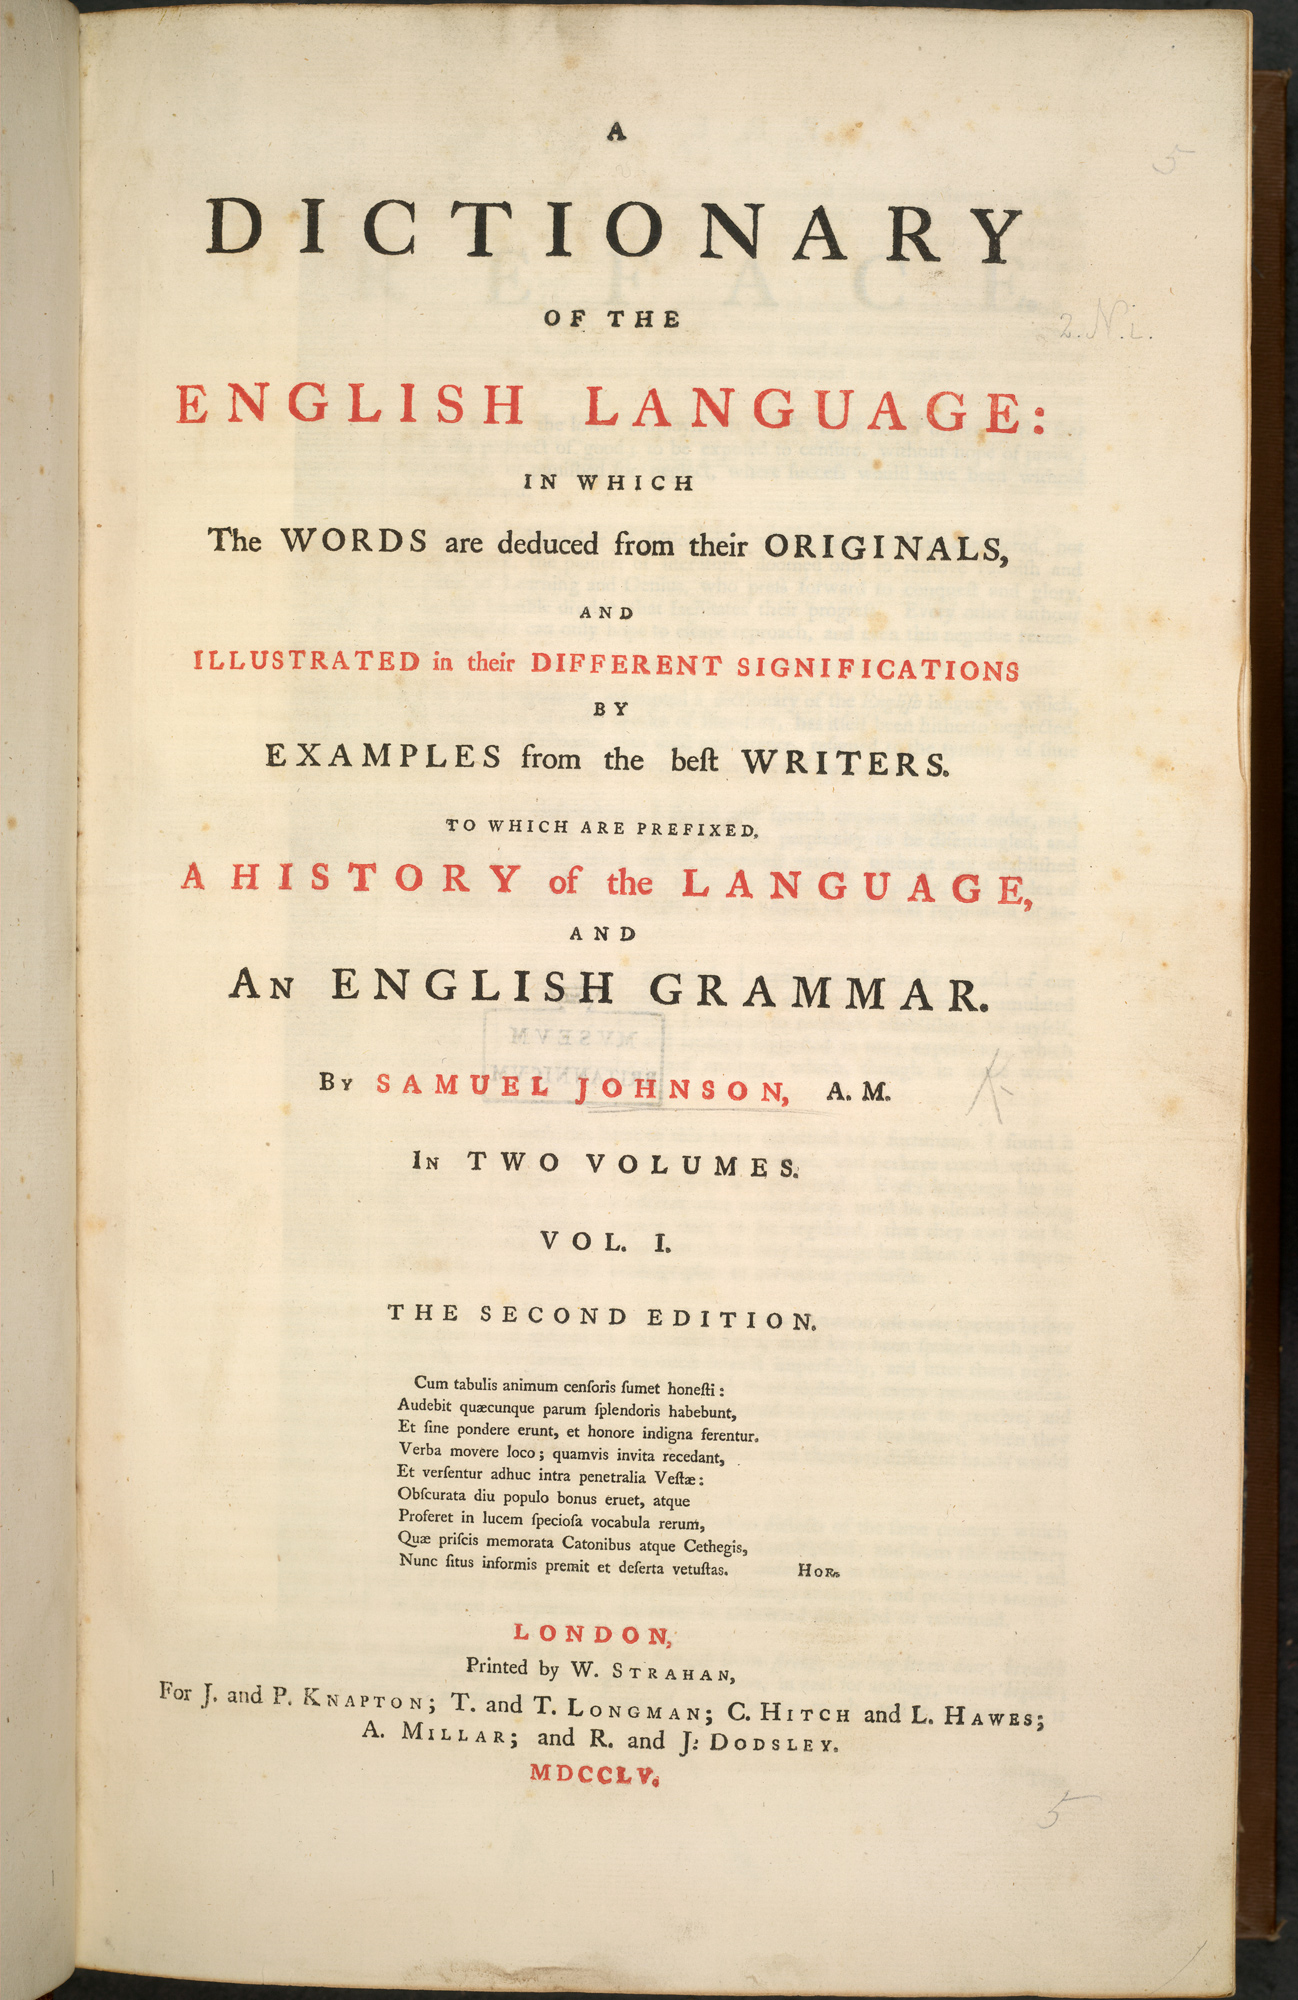 Samuel Johnson's *A Dictionary of the English Language*, 1755